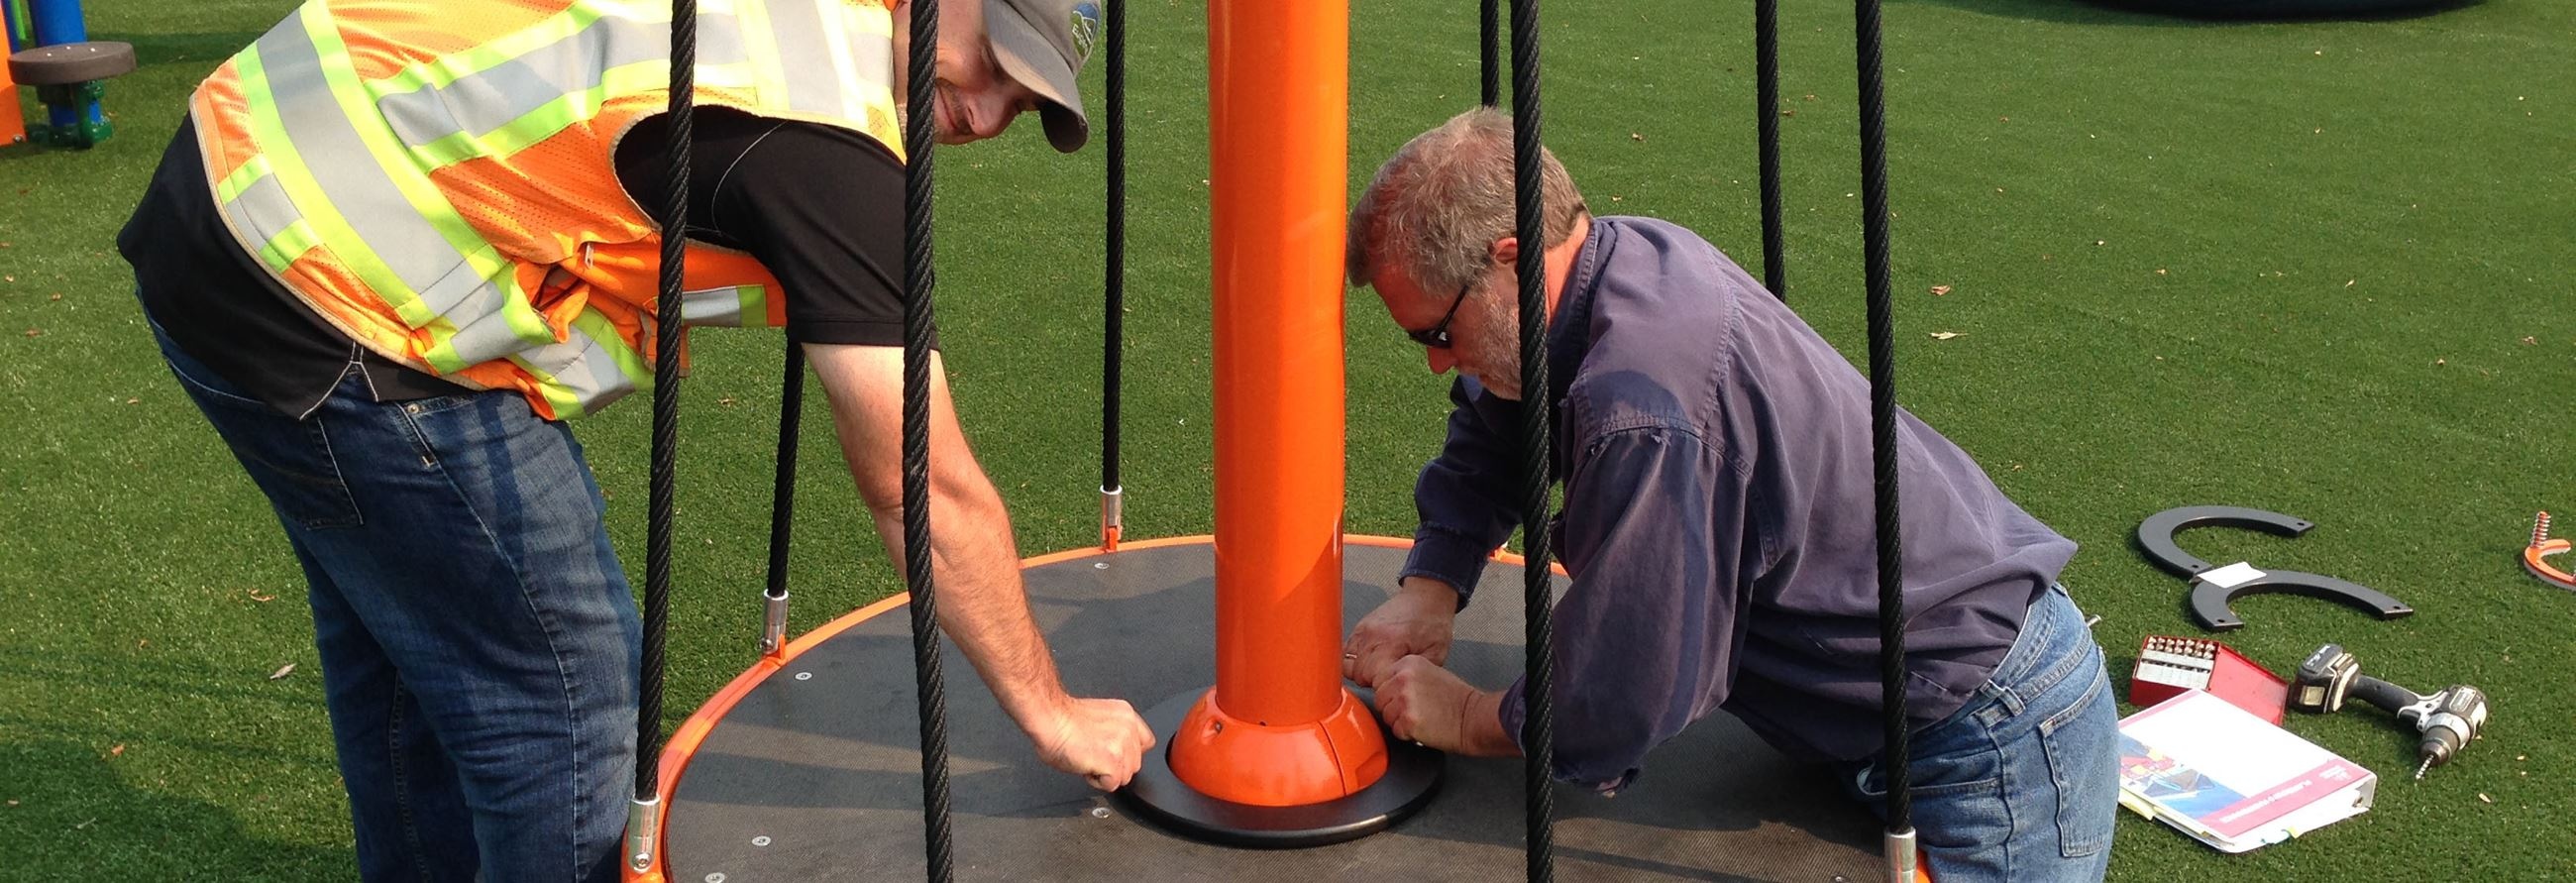 Amazon Park Playground Installation